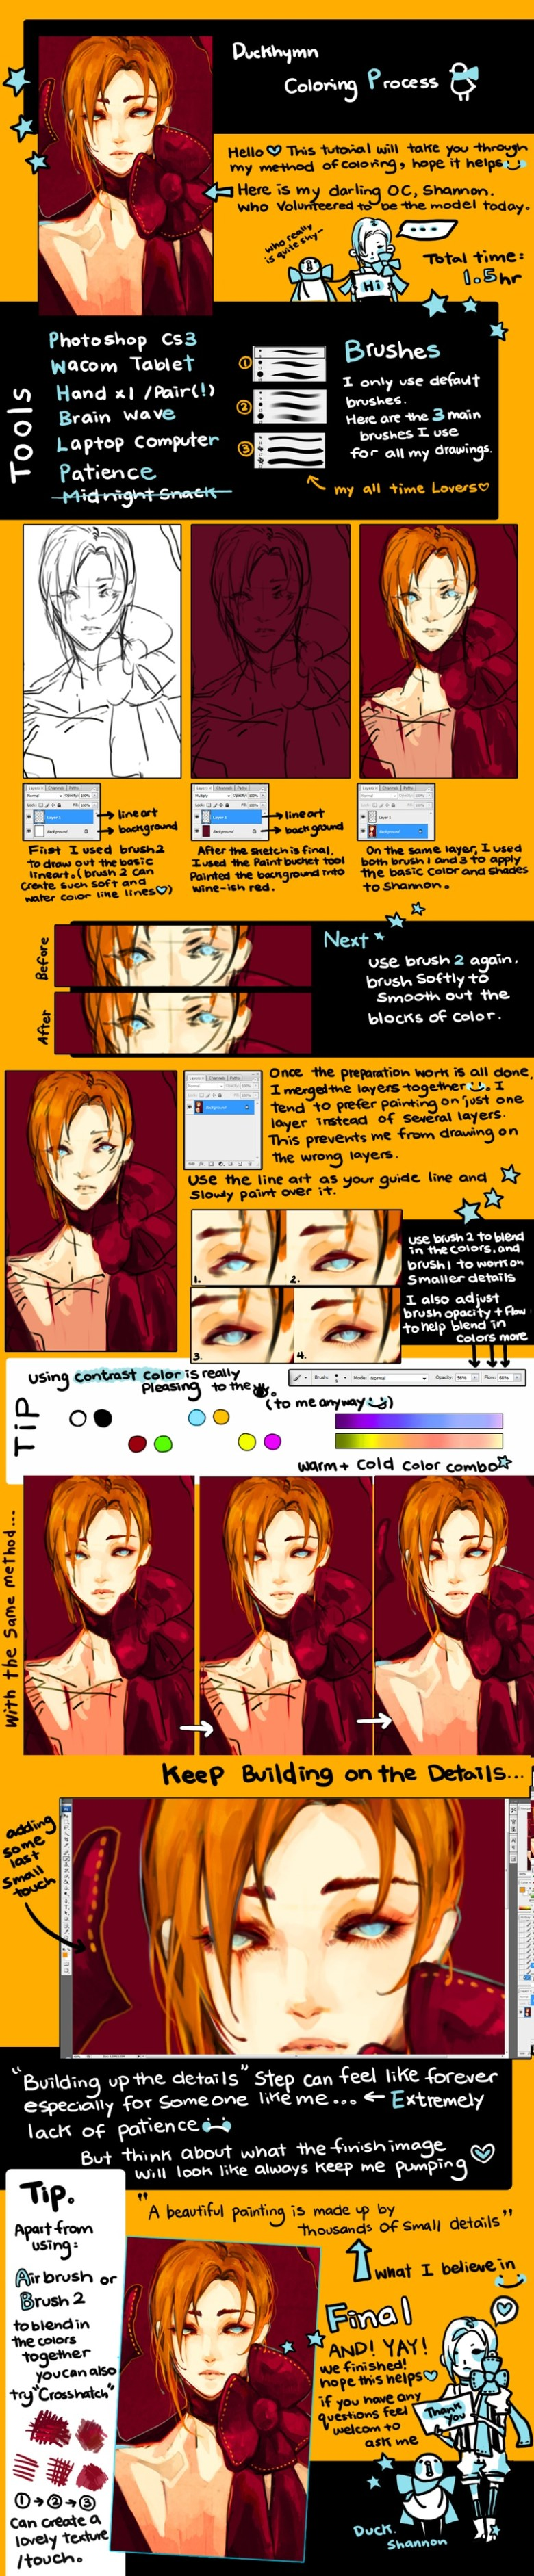 here is a very cool anime drawing tutorial using photoshop cs3